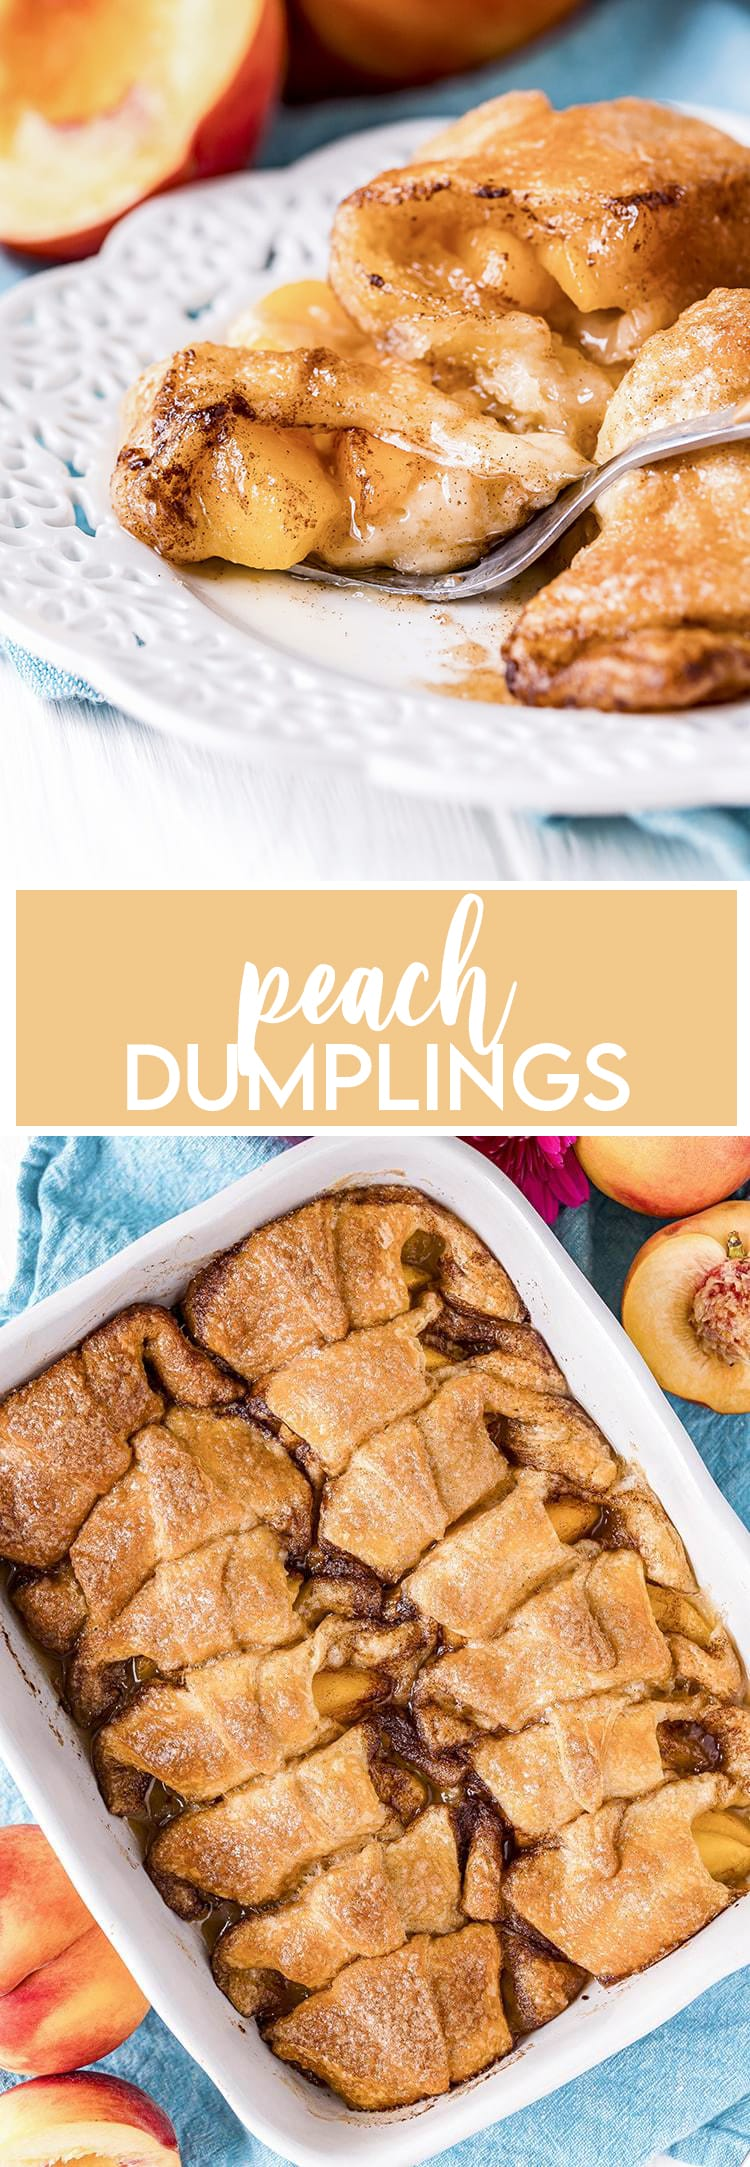 Peach dumplings on a plate with with text overlay for pinterest then another photo of peach dumplings in a pan